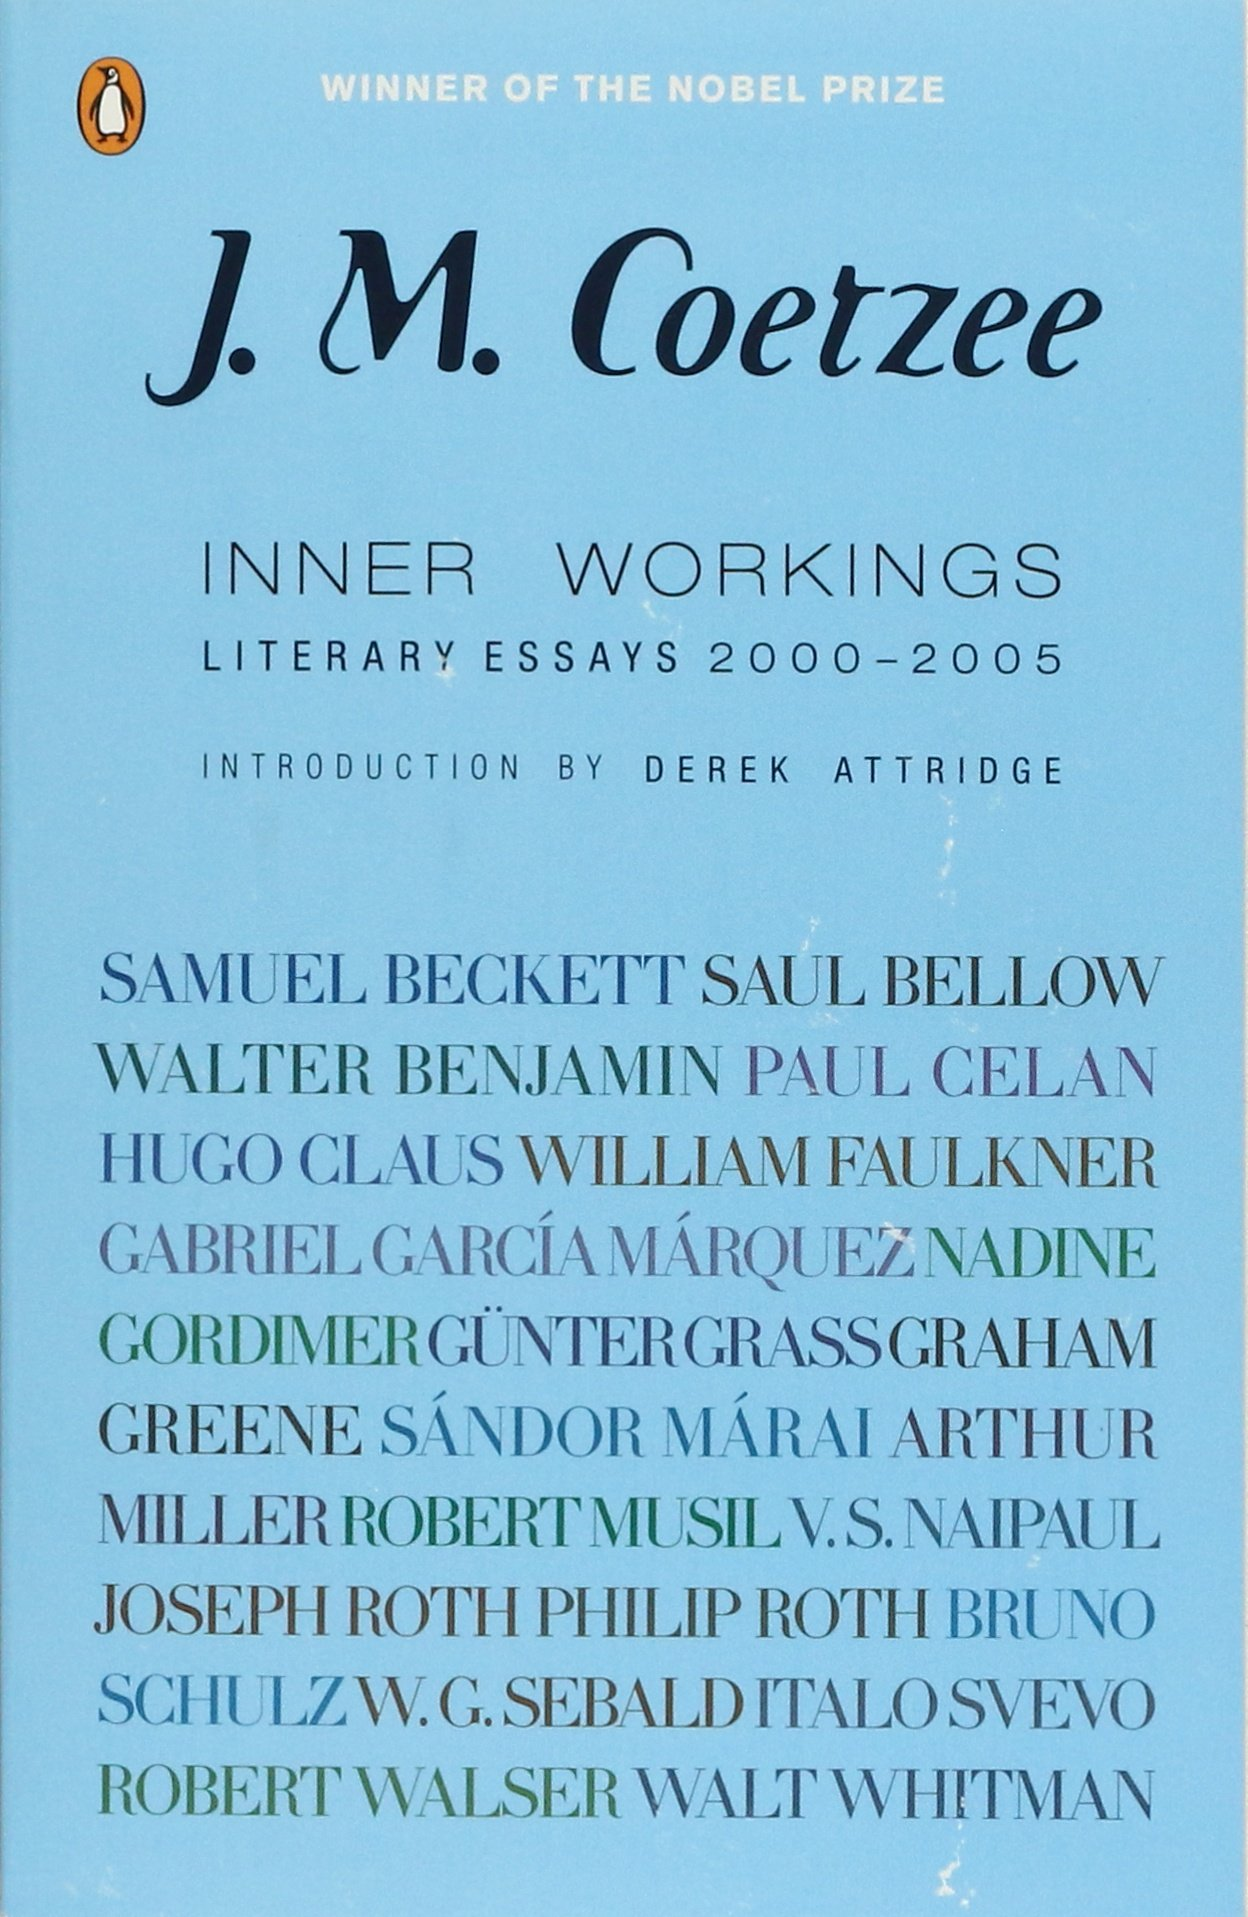 com inner workings literary essays  com inner workings literary essays 2000 2005 9780143113782 j m coetzee derek attridge books